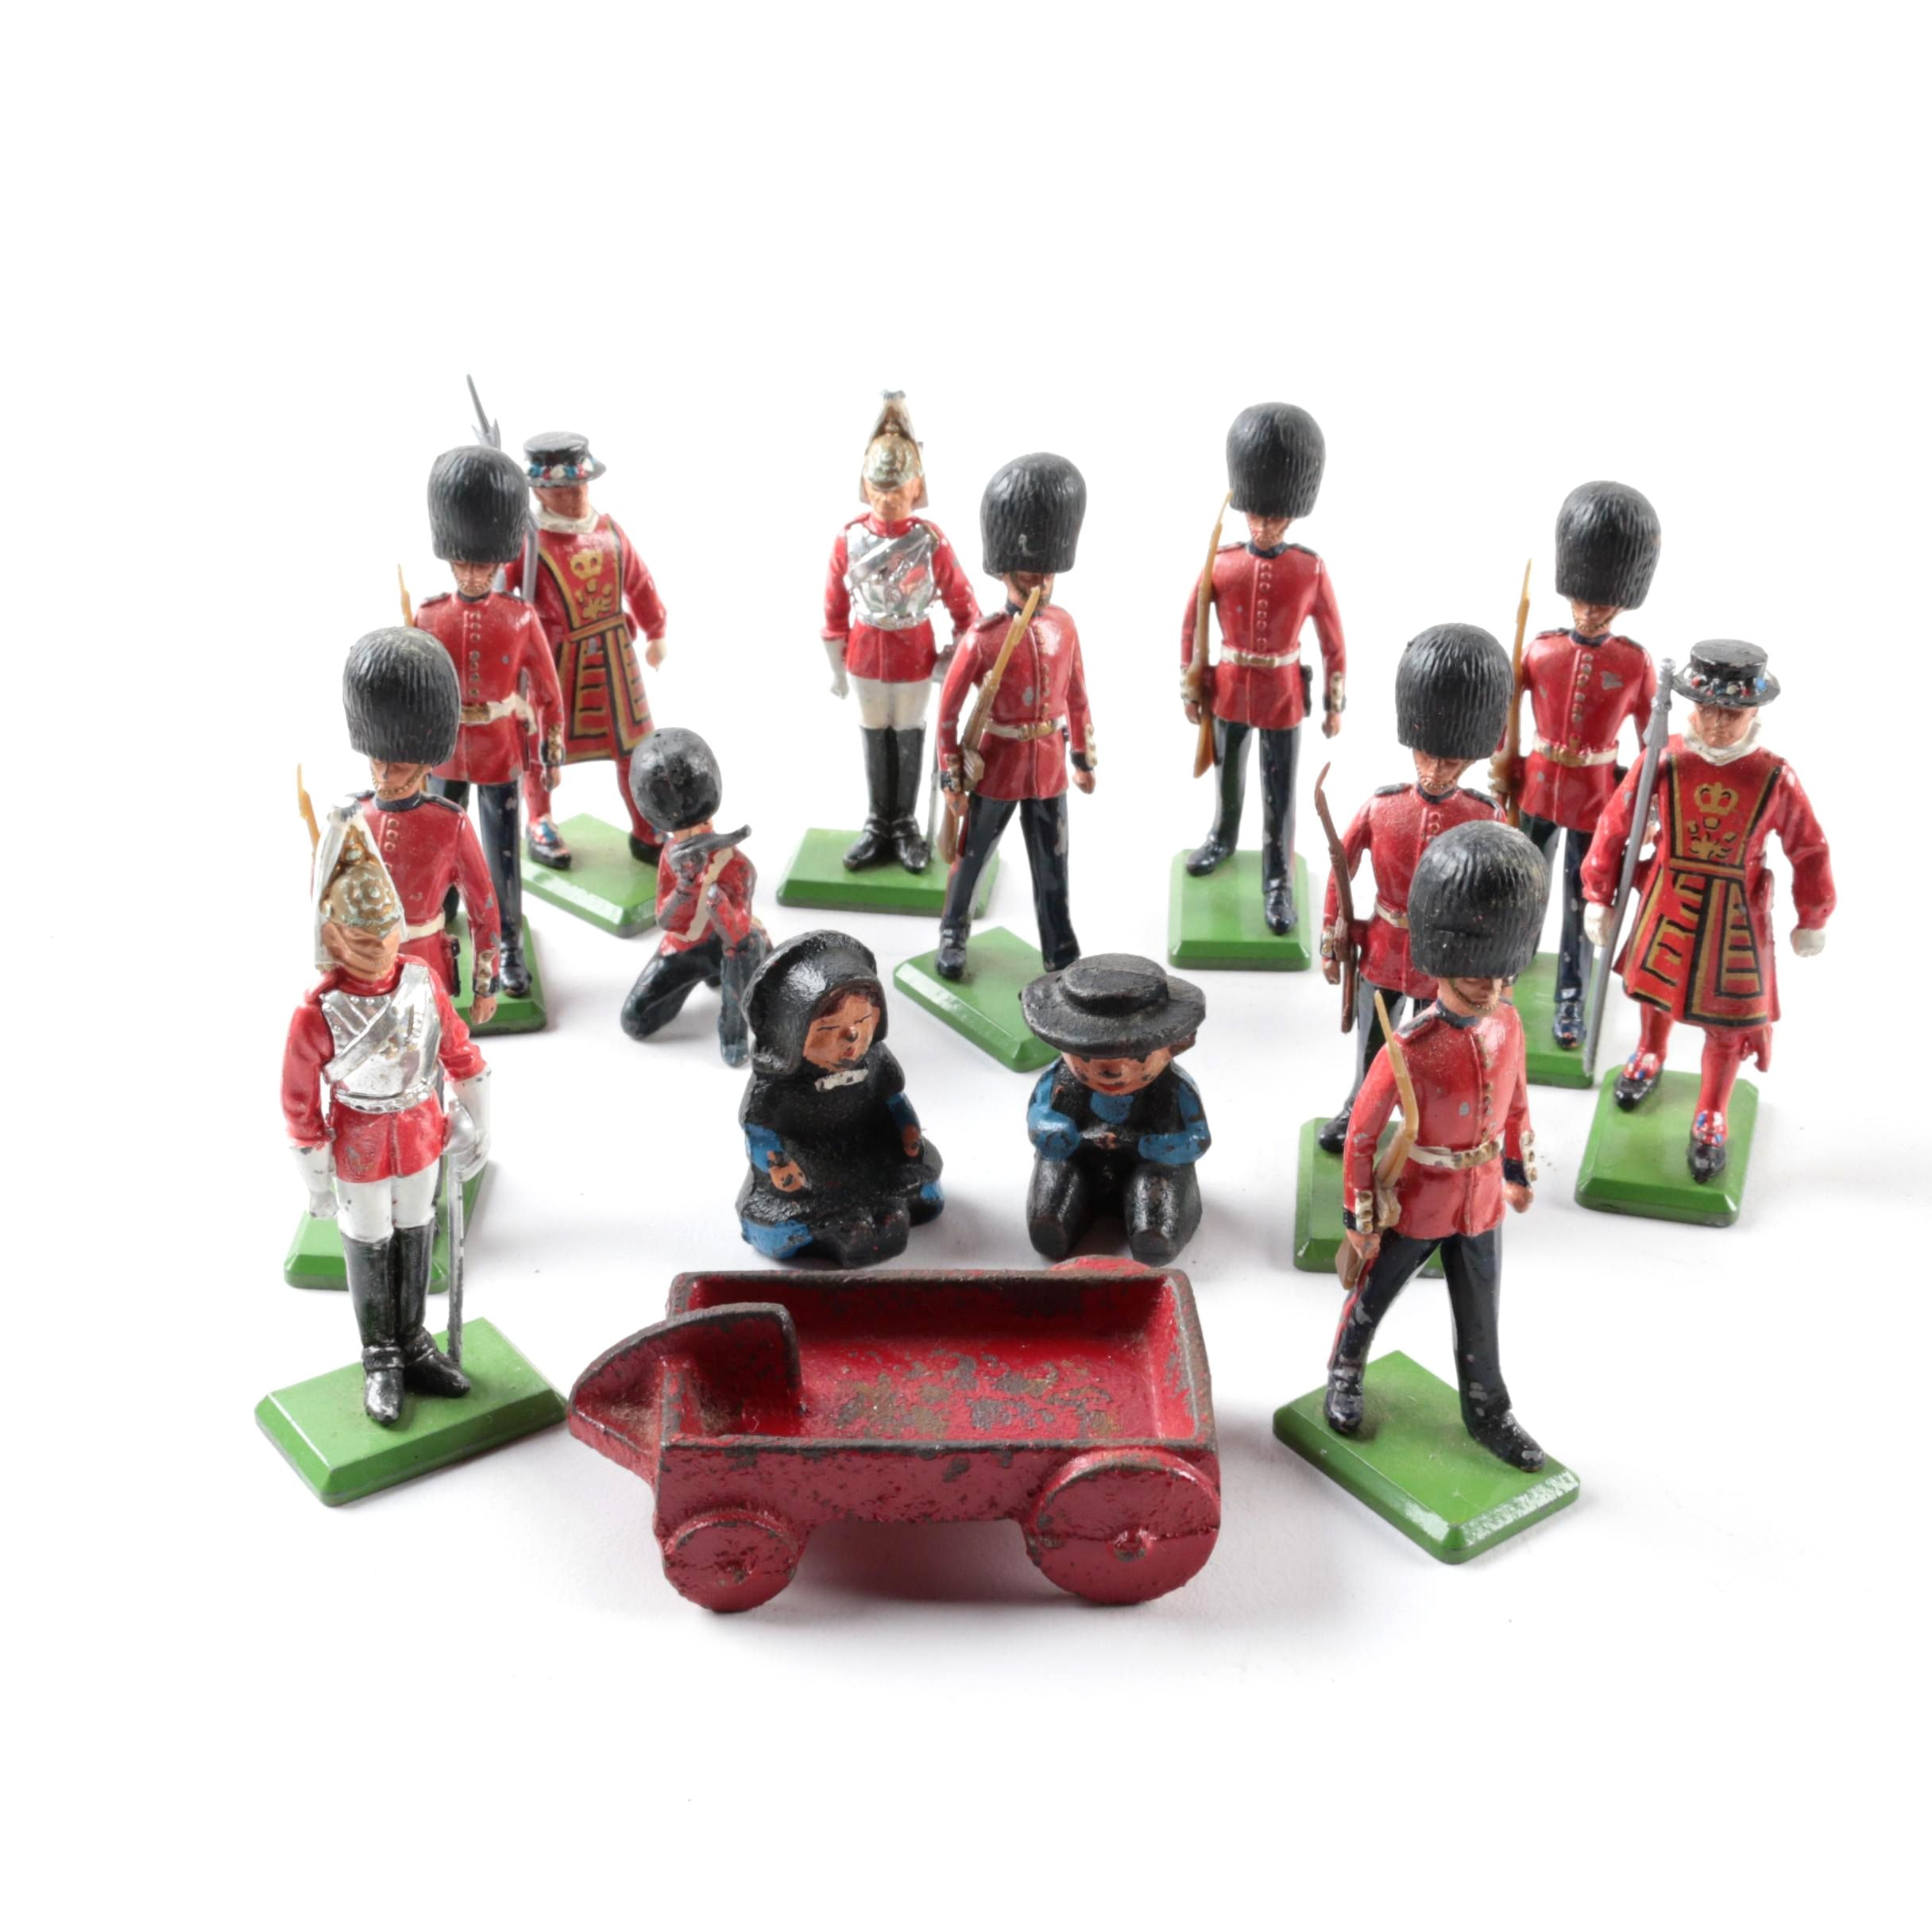 Metal British Palace and Tower Guard Figurines by Britains